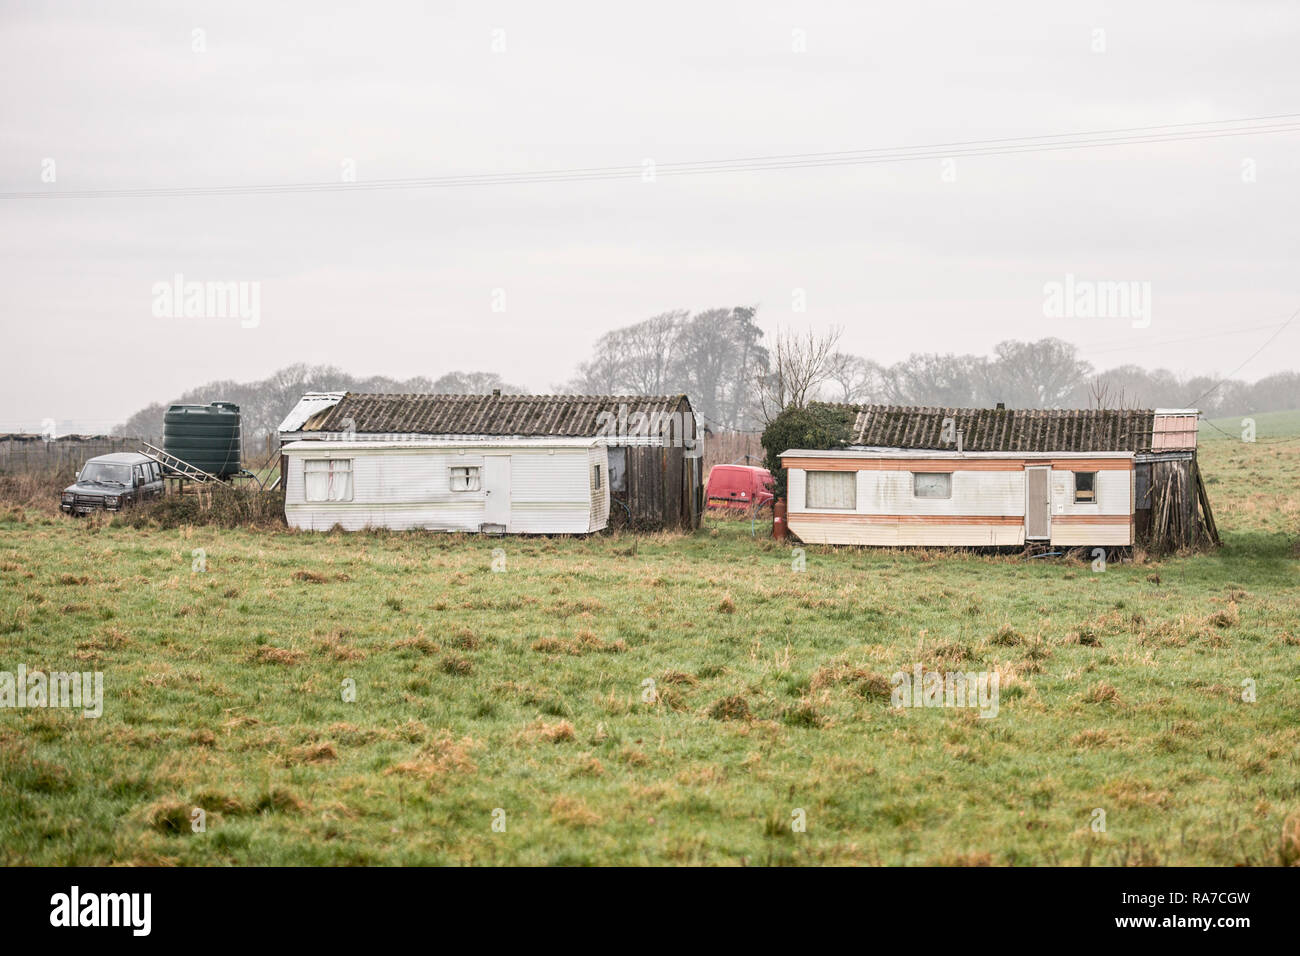 accomodation for migrant fruit farm workers - Stock Image